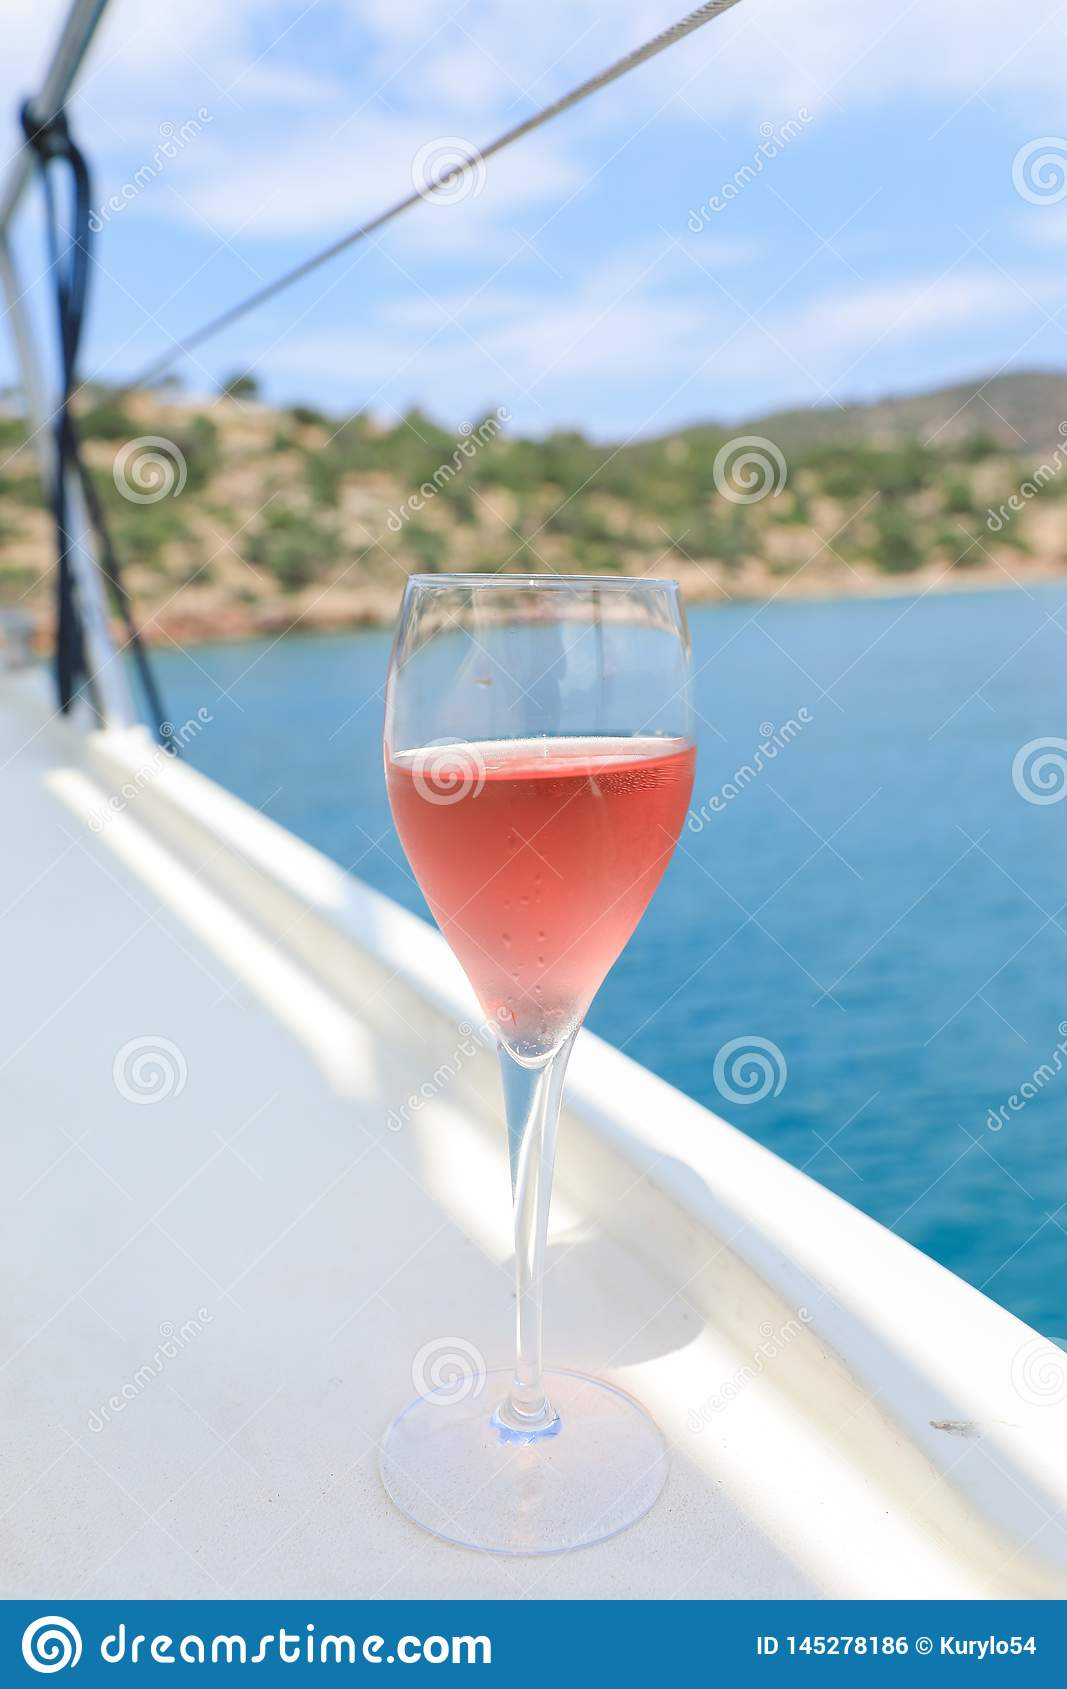 A glass of rose wine on the deck for the beginning of a summer holiday on a yacht in the Aegean Sea